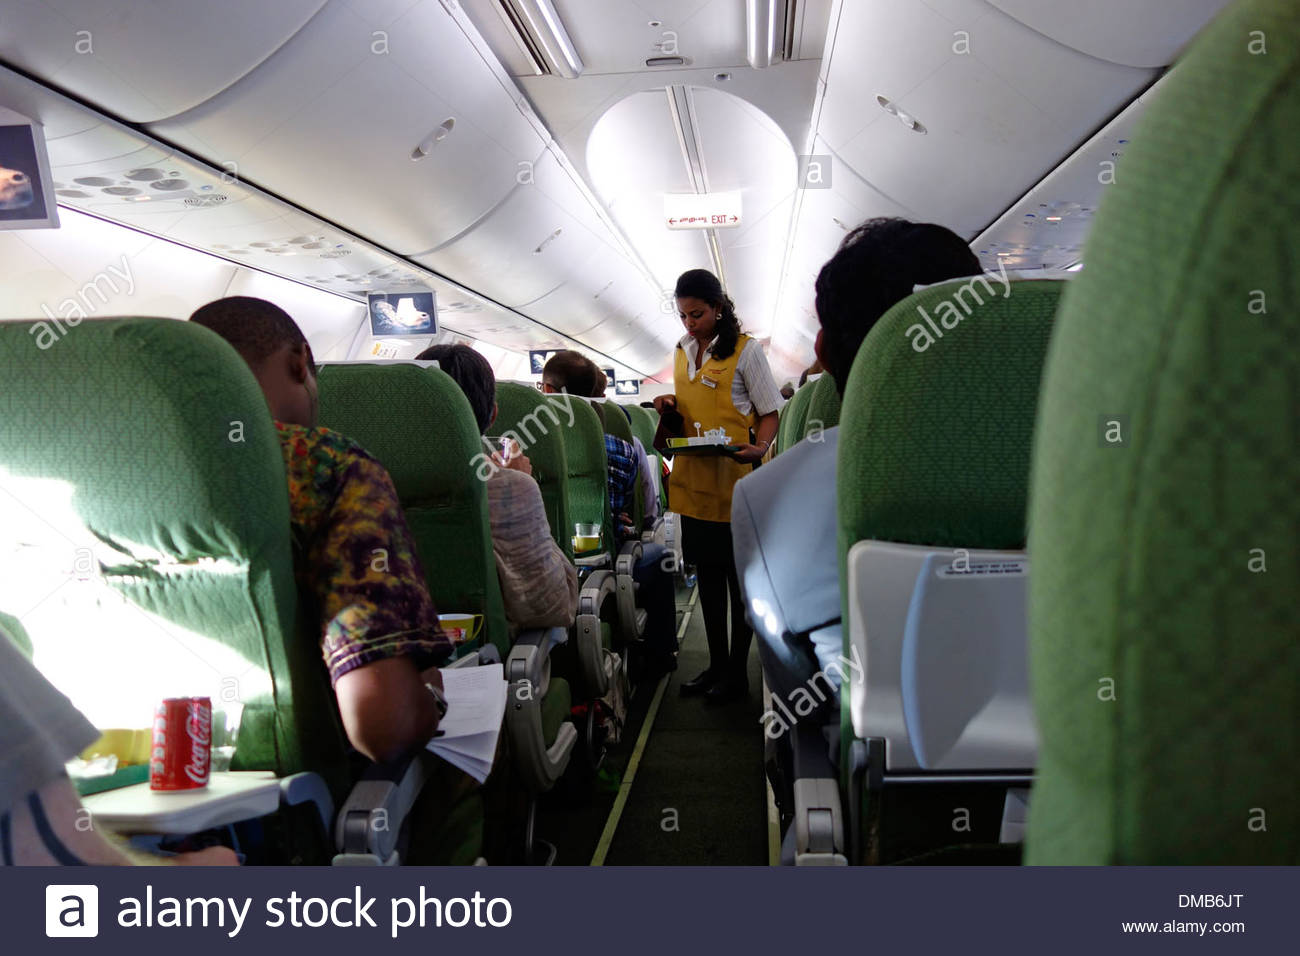 An air stewardess serves coffee on Ethiopian Airlines flight - Stock Image